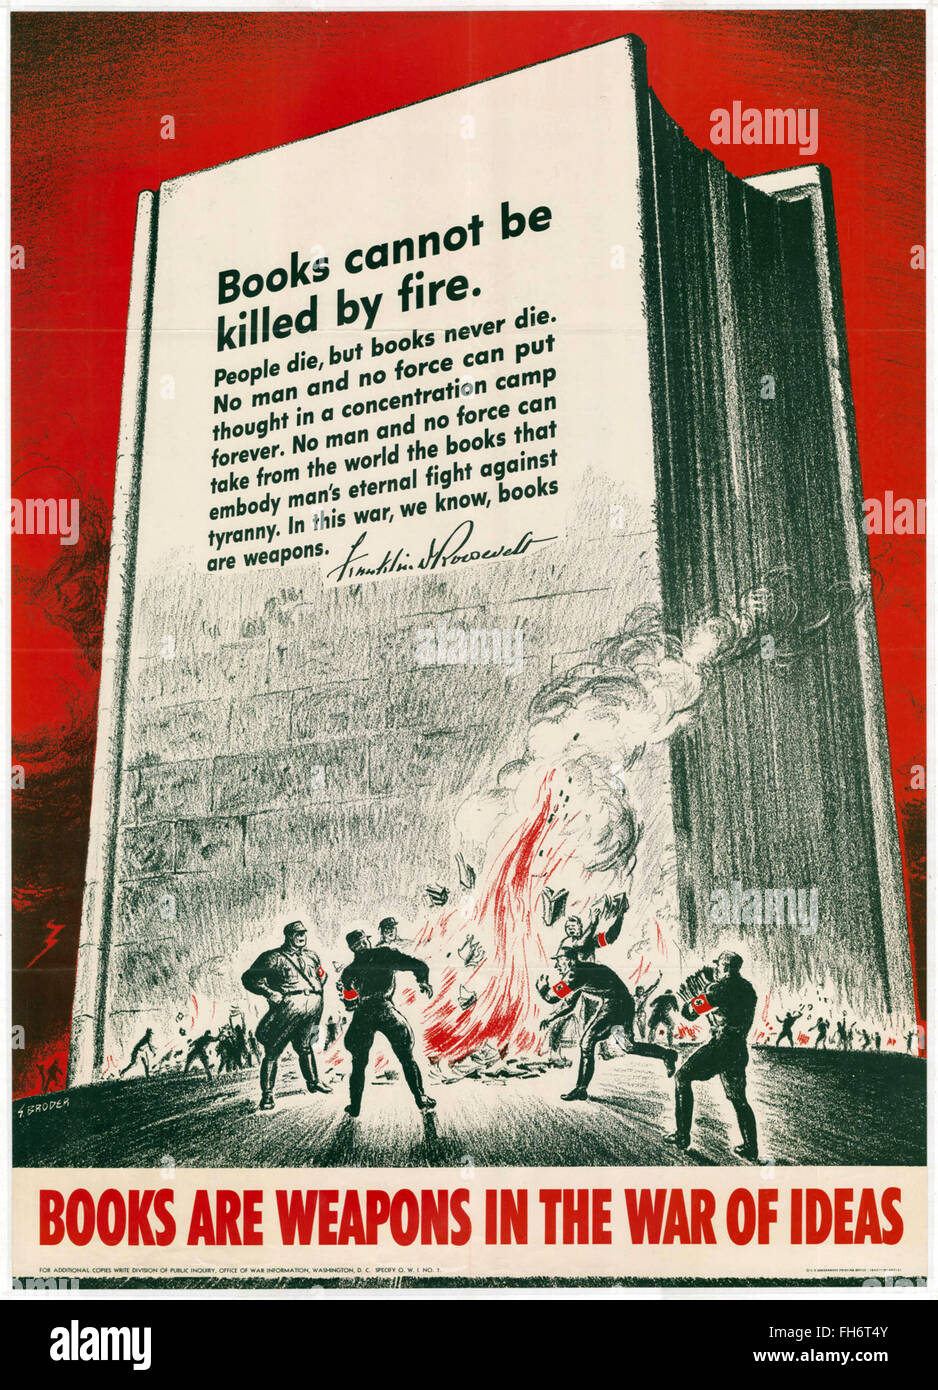 Books Are Weapons in the War of Ideas- US Propaganda Poster - WWII - Stock Image